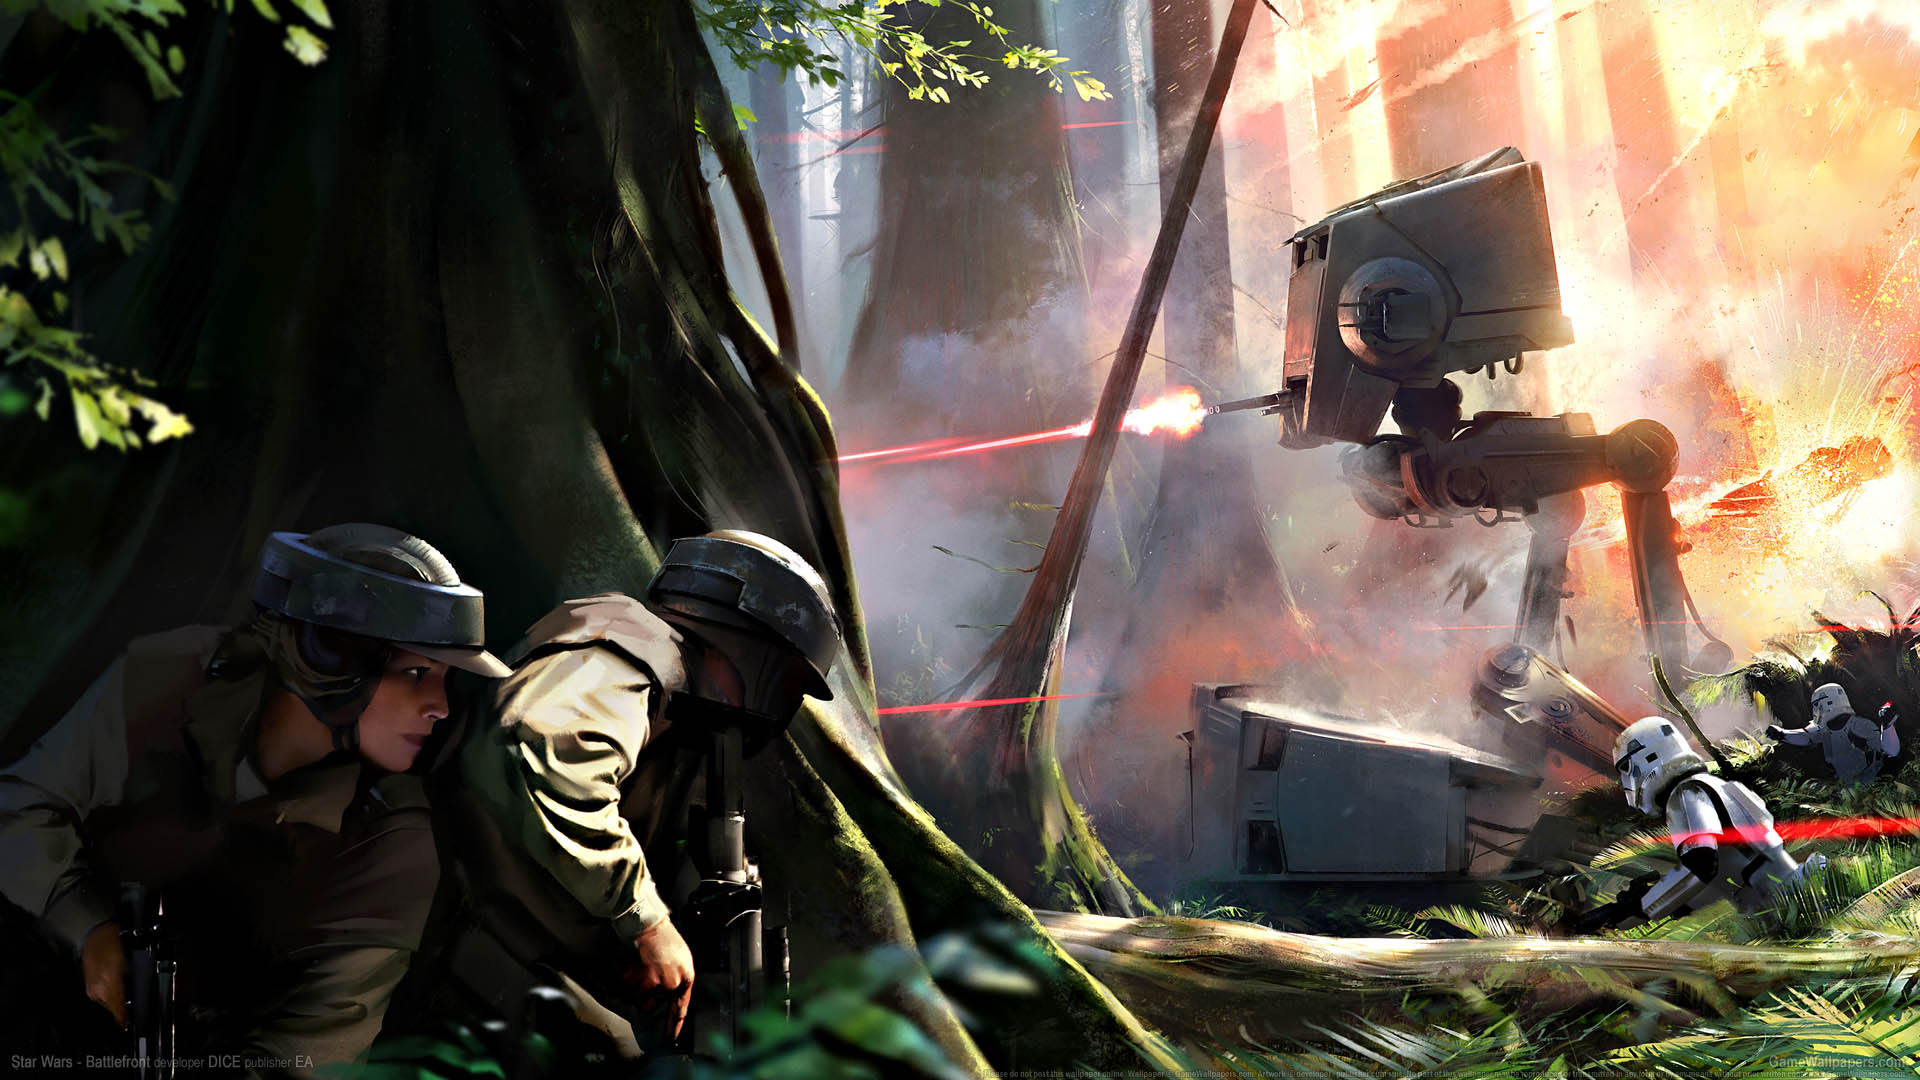 Star Wars - Battlefront wallpaper 01 1920x1080